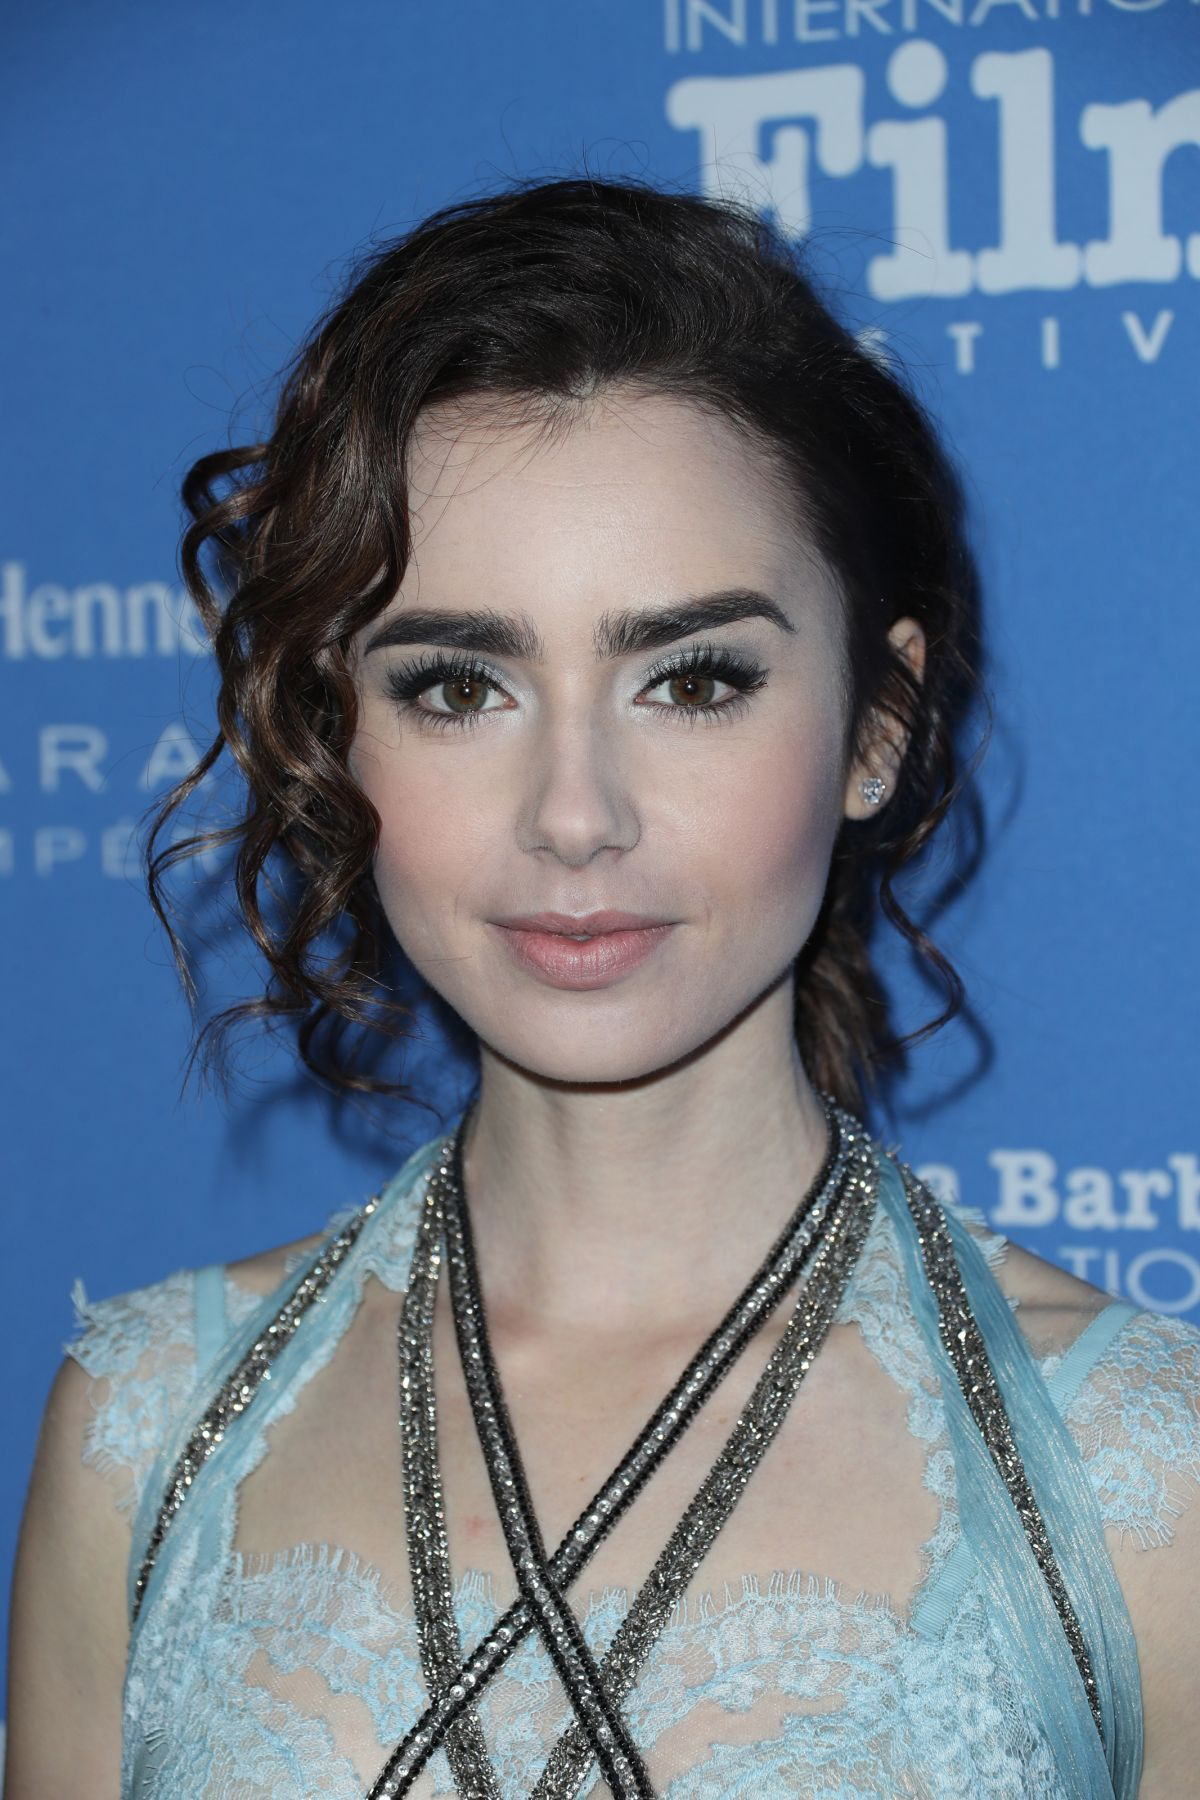 Lily Collins At SBI Film Festival for Excellence in Film at Bavaria Resort Spa in Goleta, CA